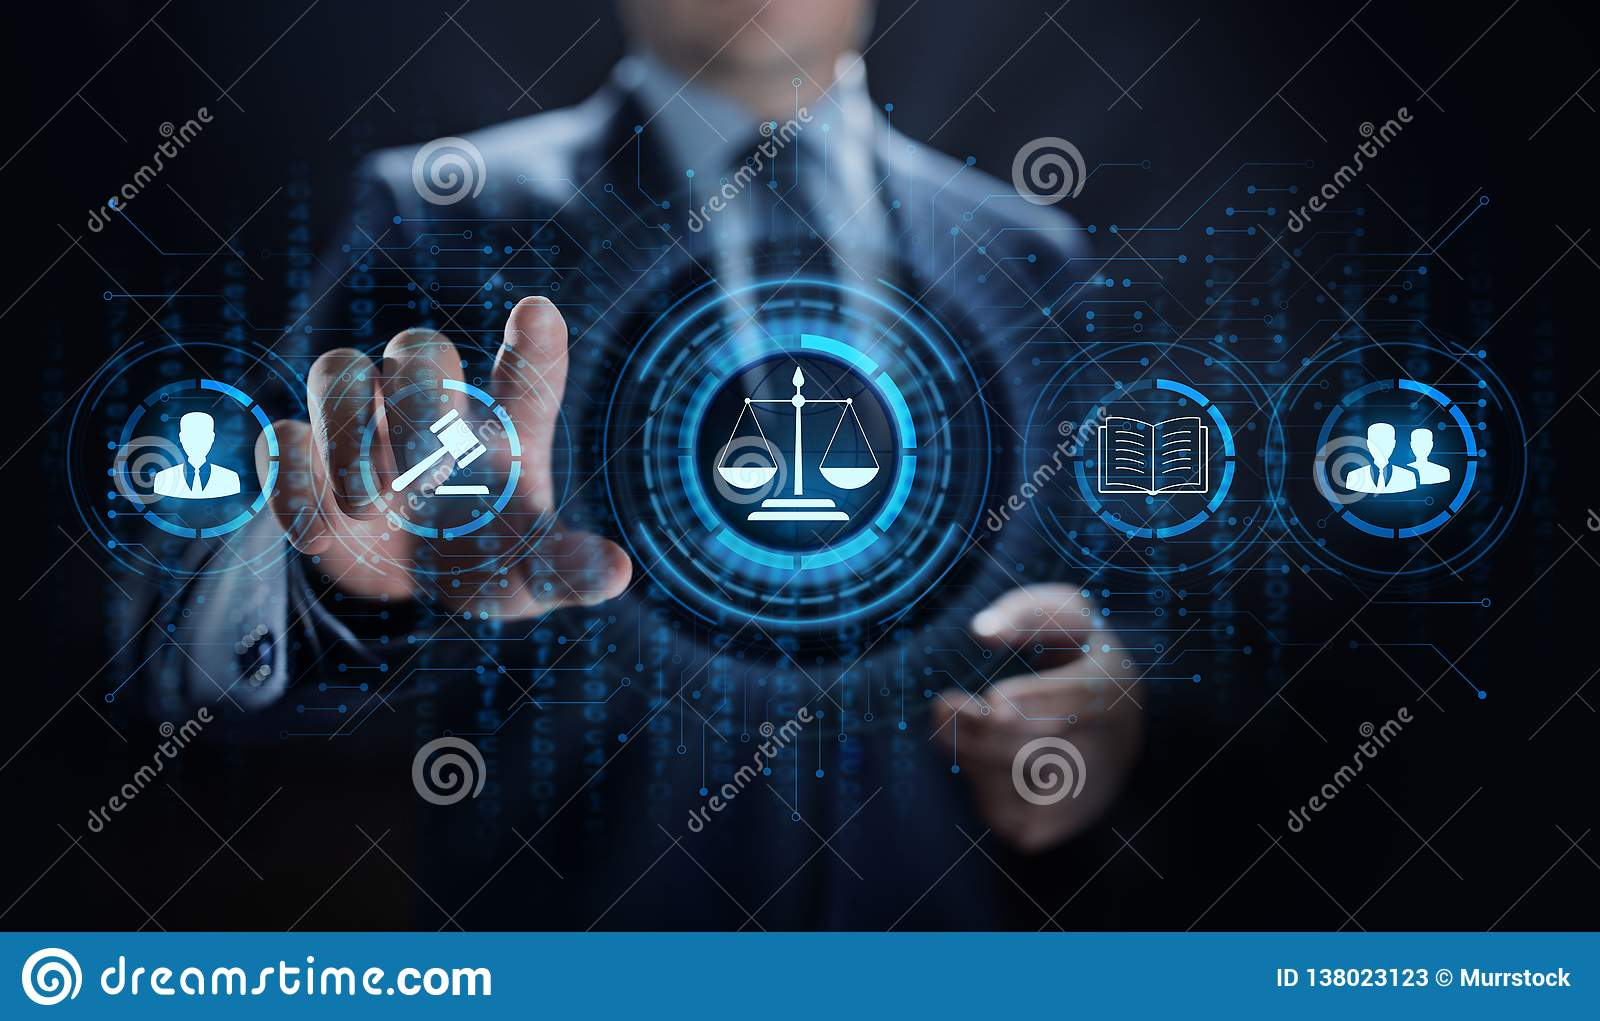 Attorney at law legal business advice lawyer. Labor compliance.